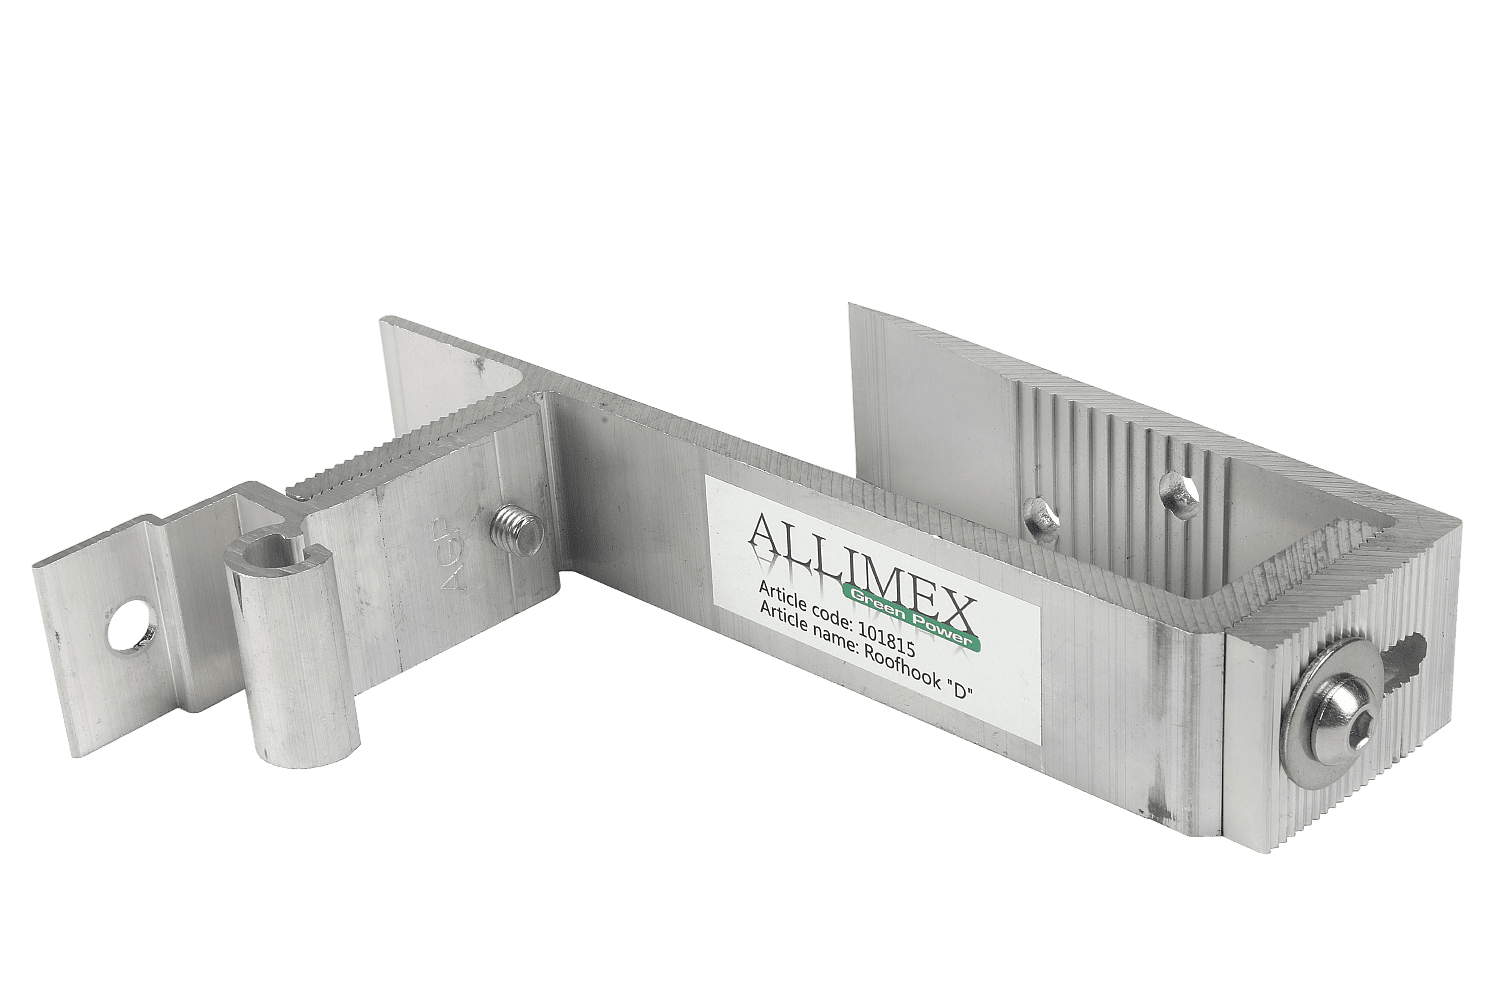 Allimex Roof hook D2